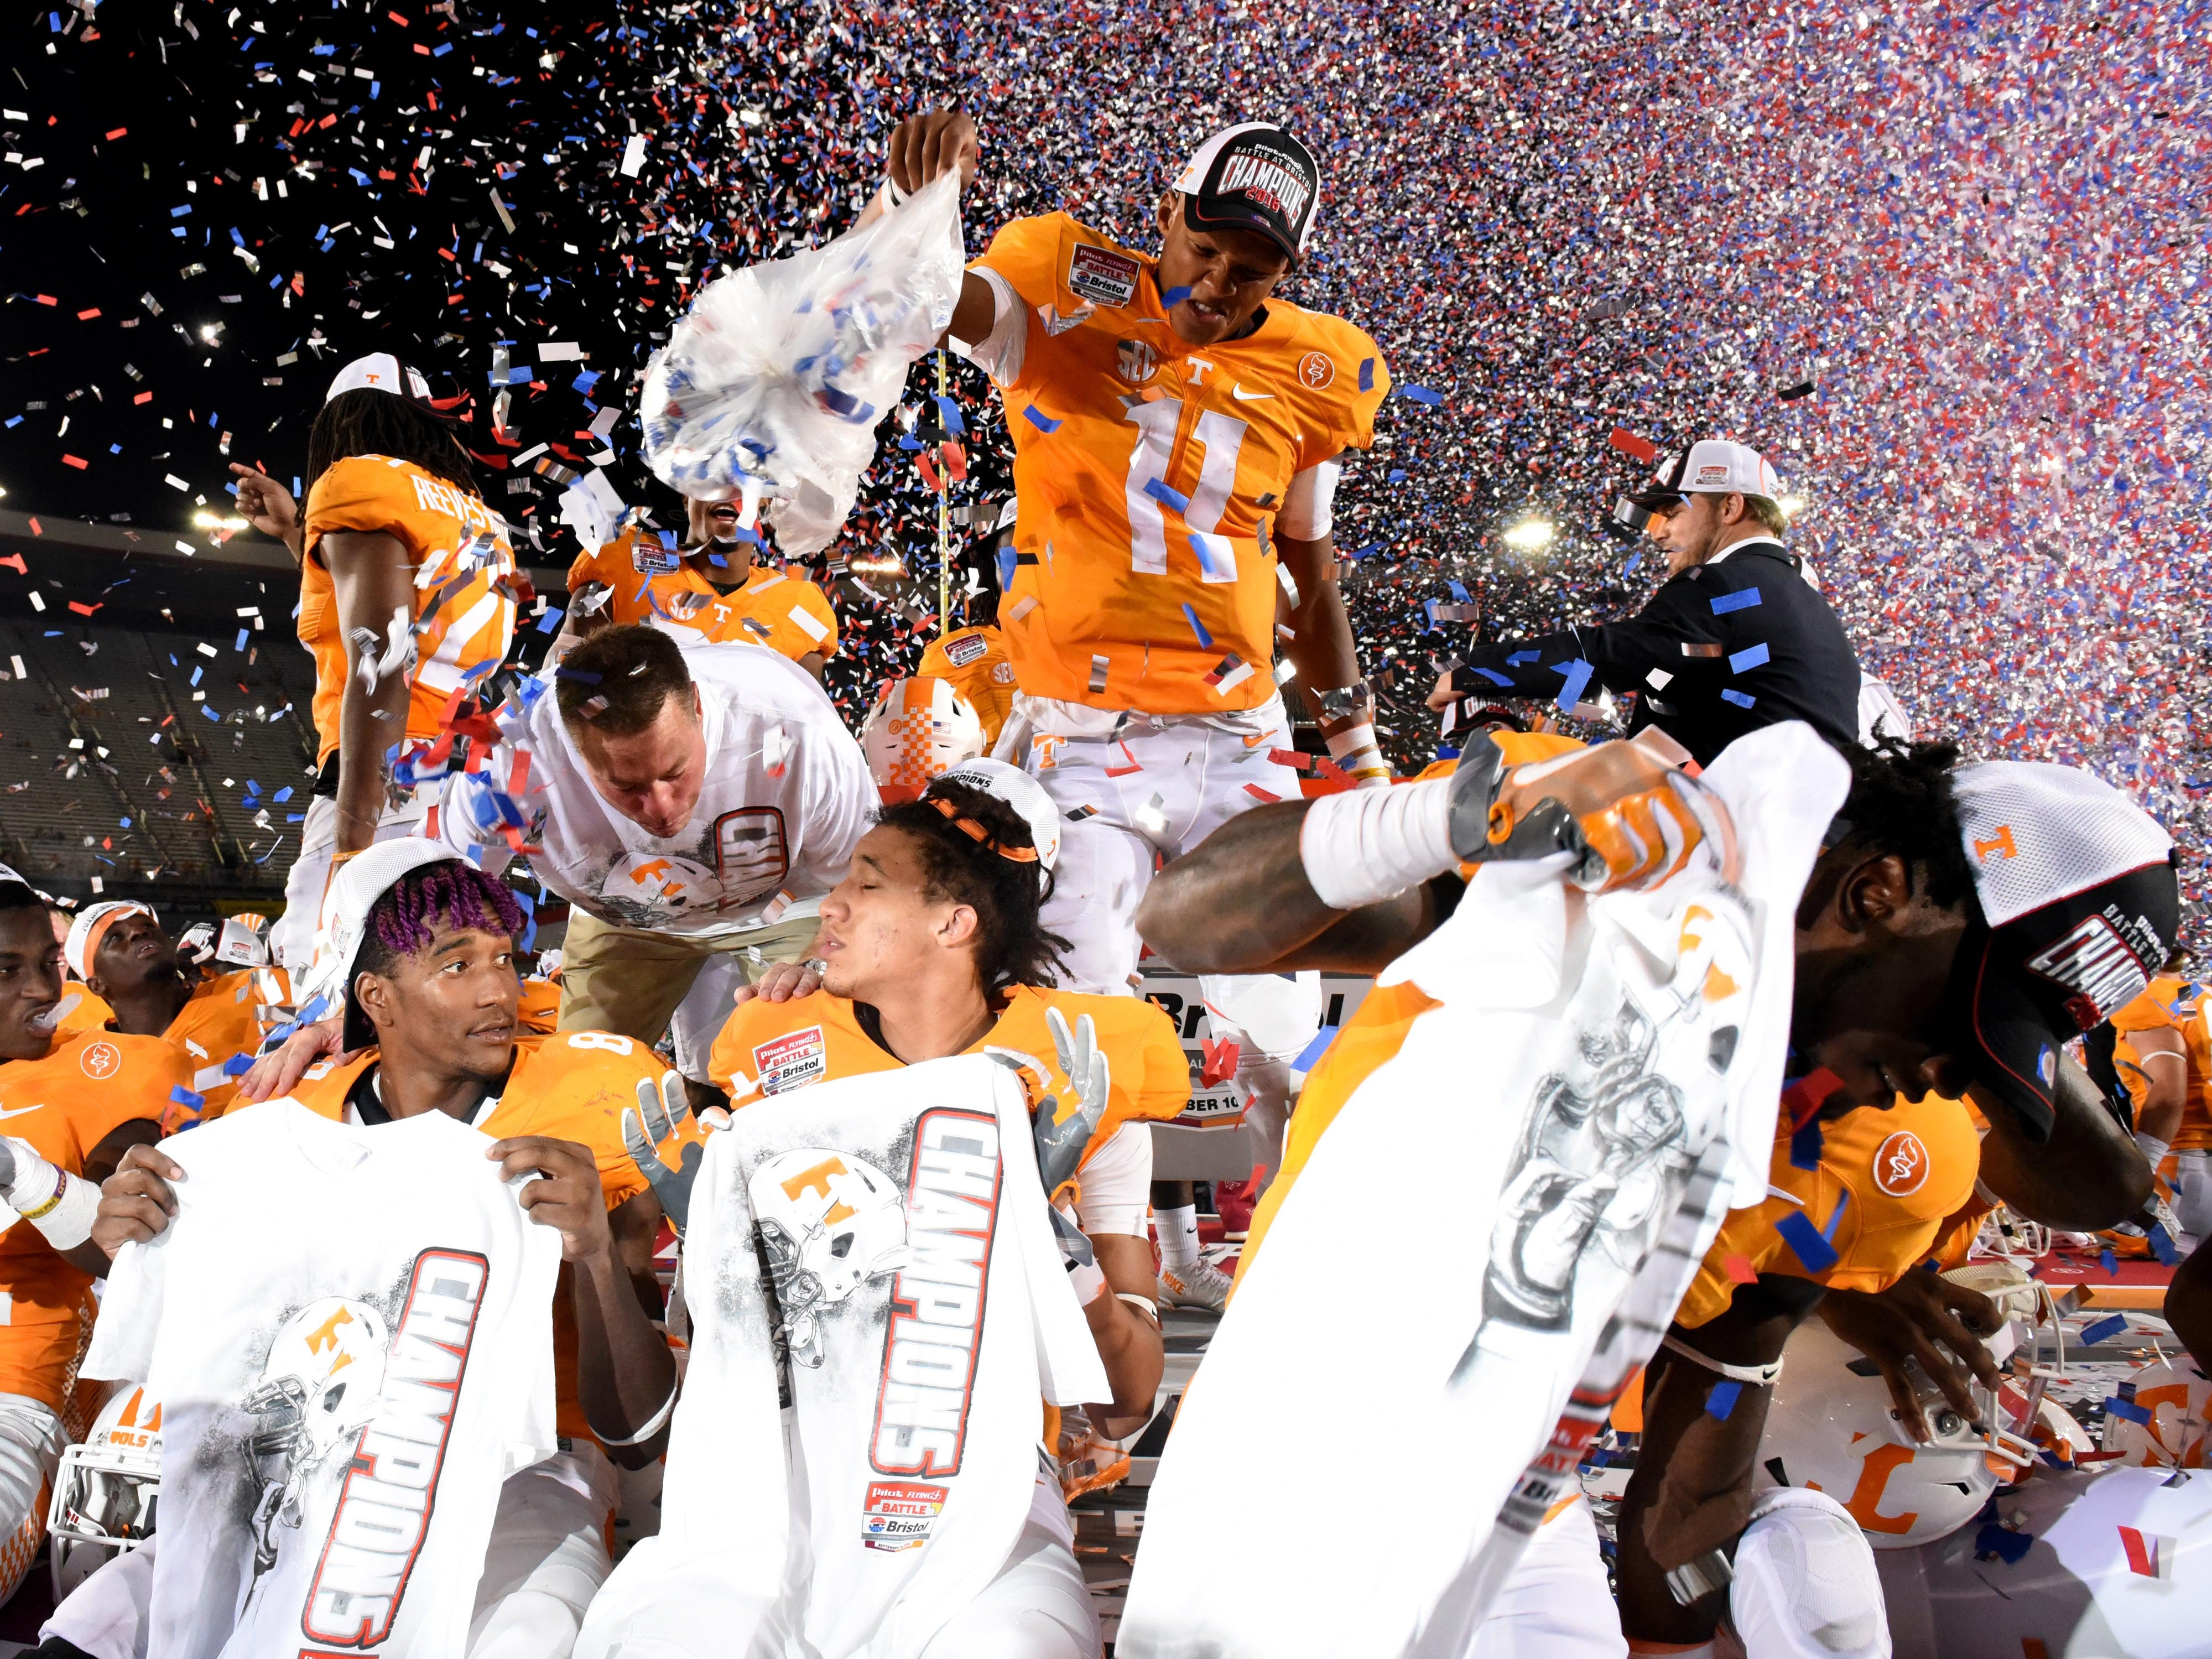 Tennessee quarterback Joshua Dobbs (11) dumps confetti over his Tennessee teammates as they celebrate their 45-24 win over Virginia Tech at The Battle At Bristol Sunday, September 11, 2016 in Bristol, Tenn.